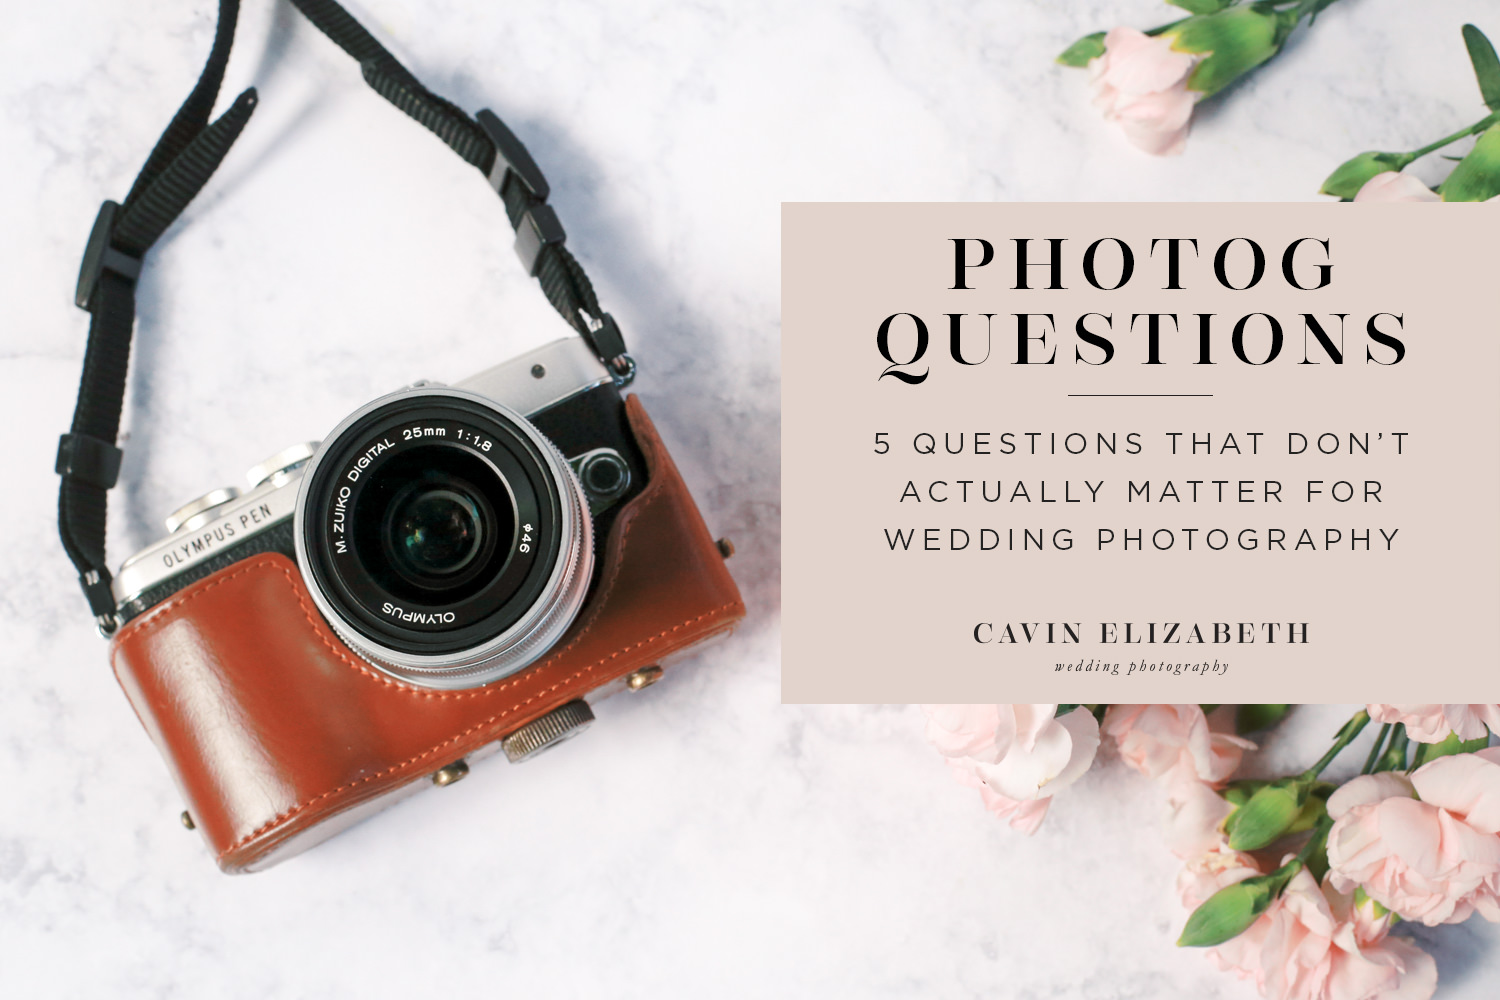 5 Wedding Photographer Questions that Aren't That Important